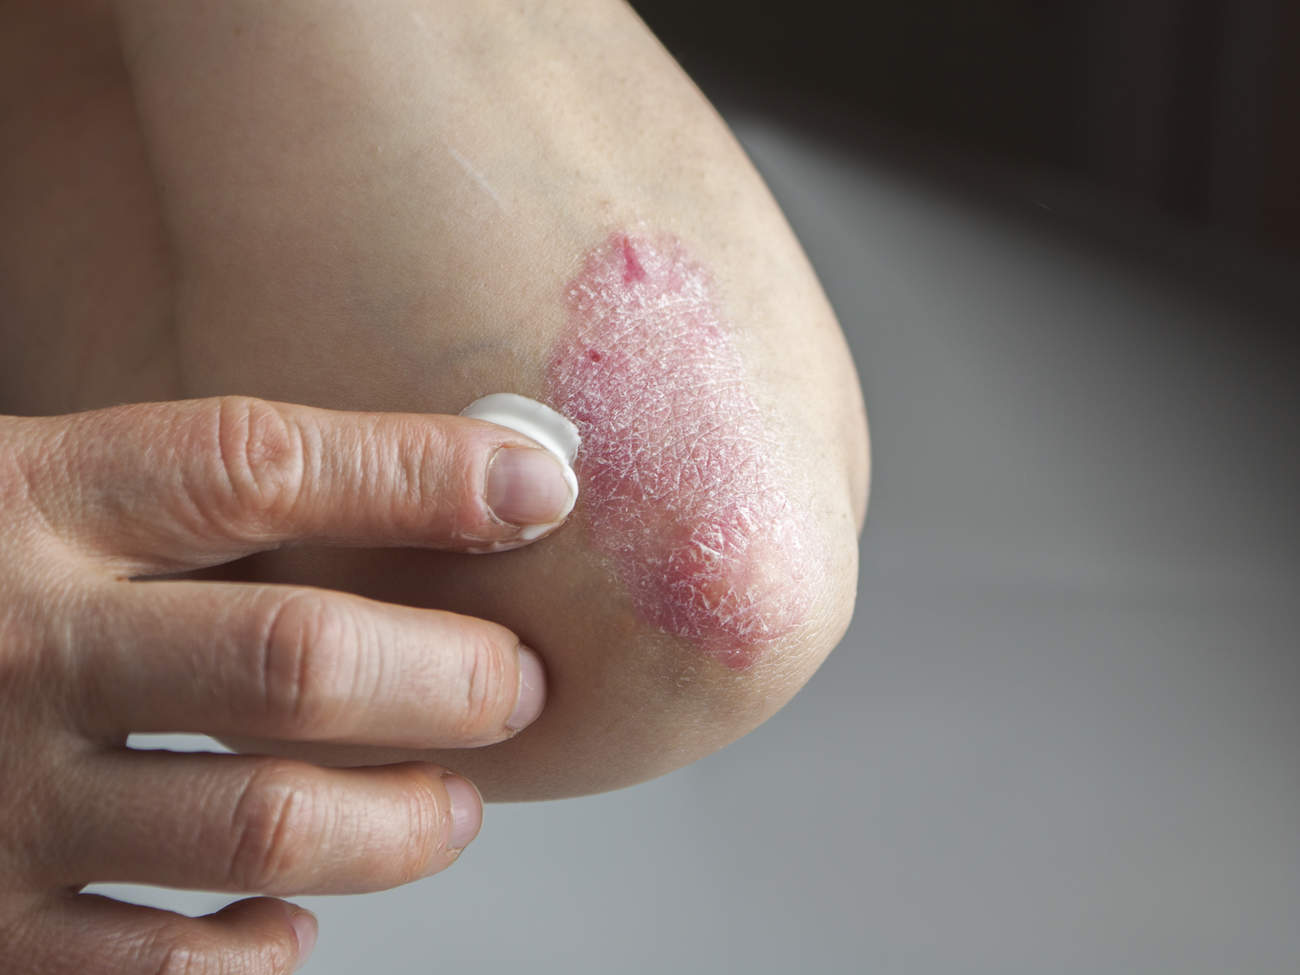 psoriasis-condition-center-elbow